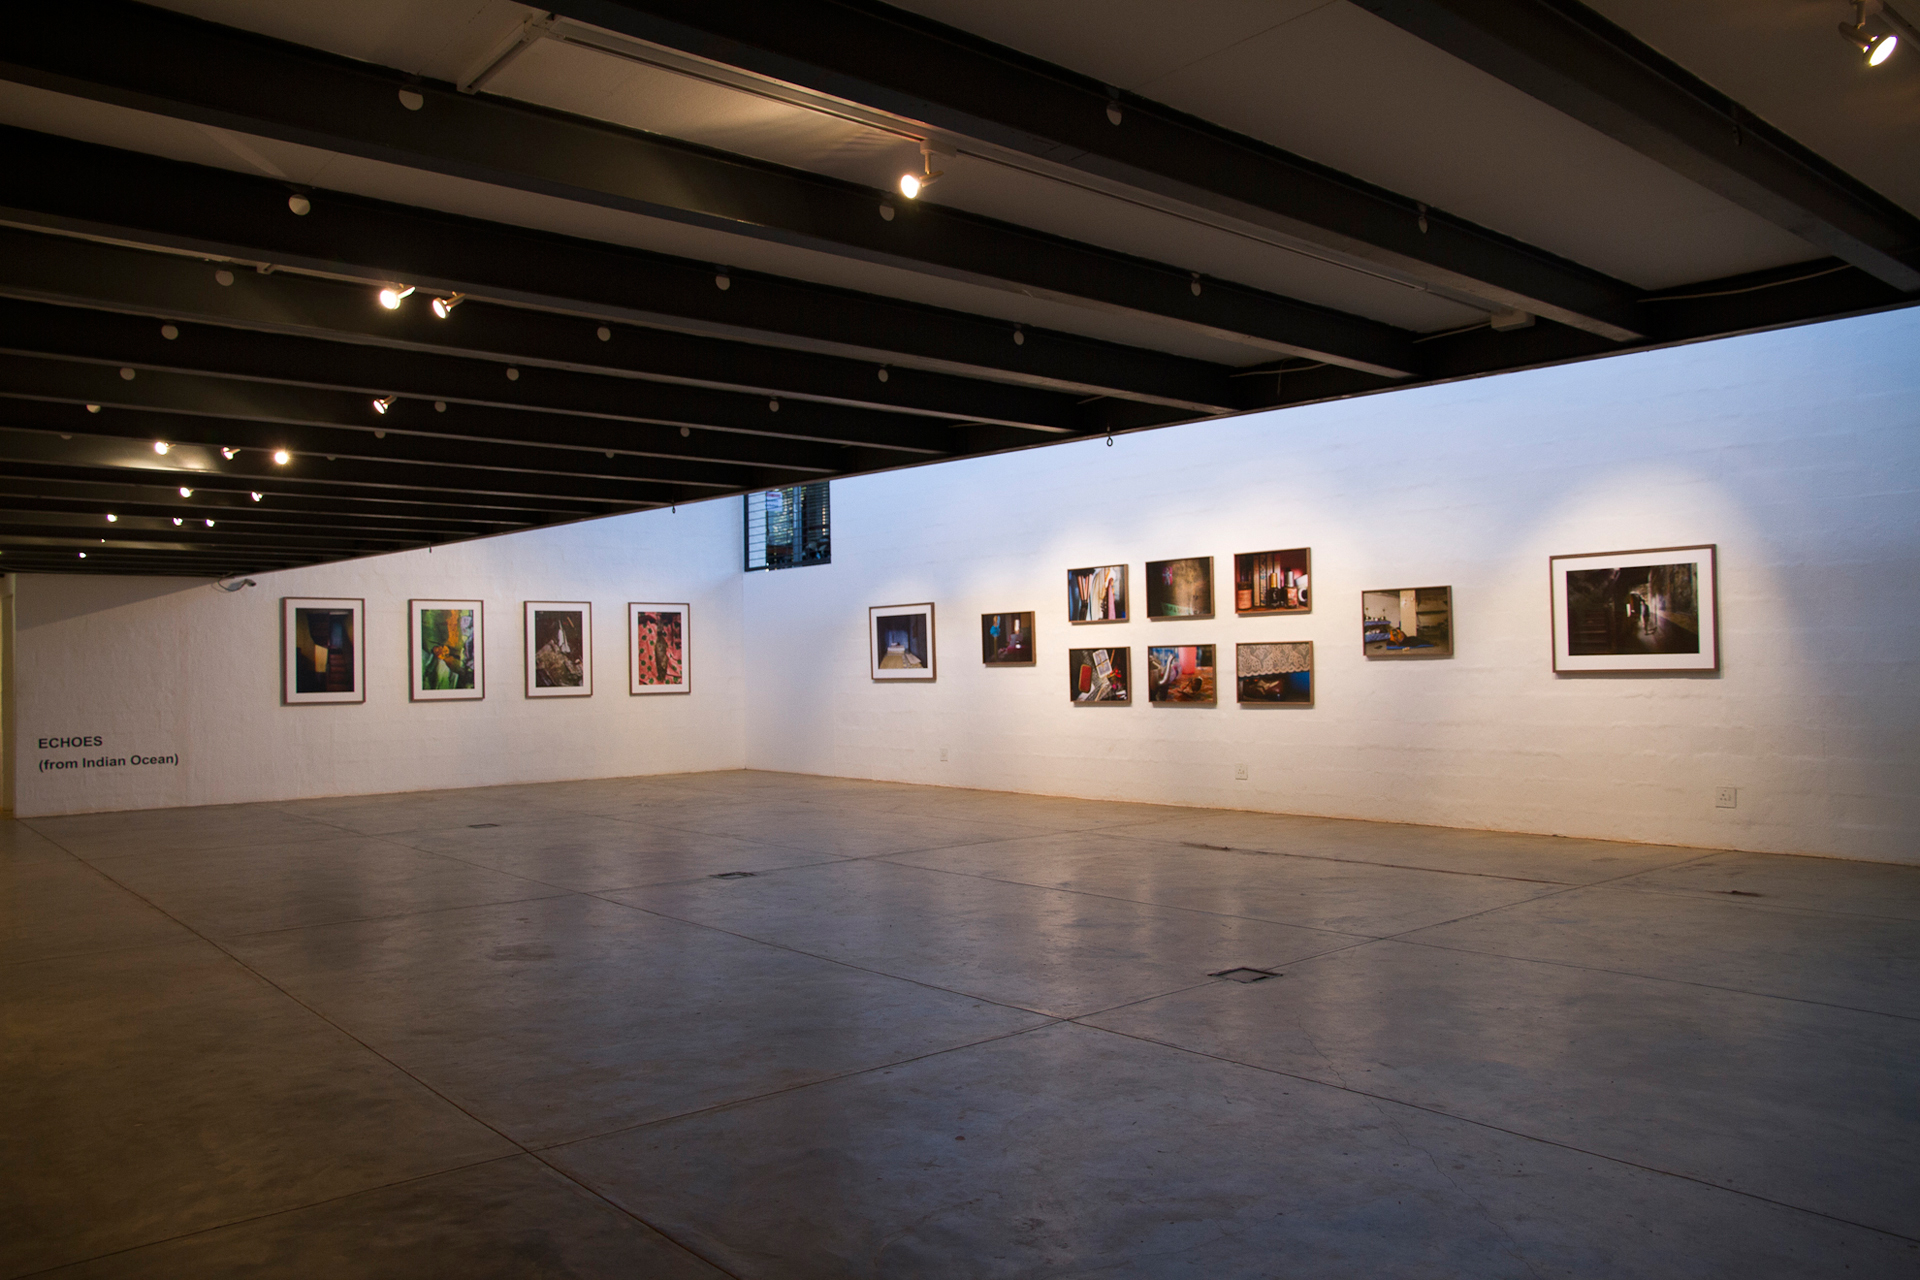 Exhibition at the Kwa Zulu Natal Society of Arts Durban, South Africa, July – August 2012.  Curated by Bren Brophy.